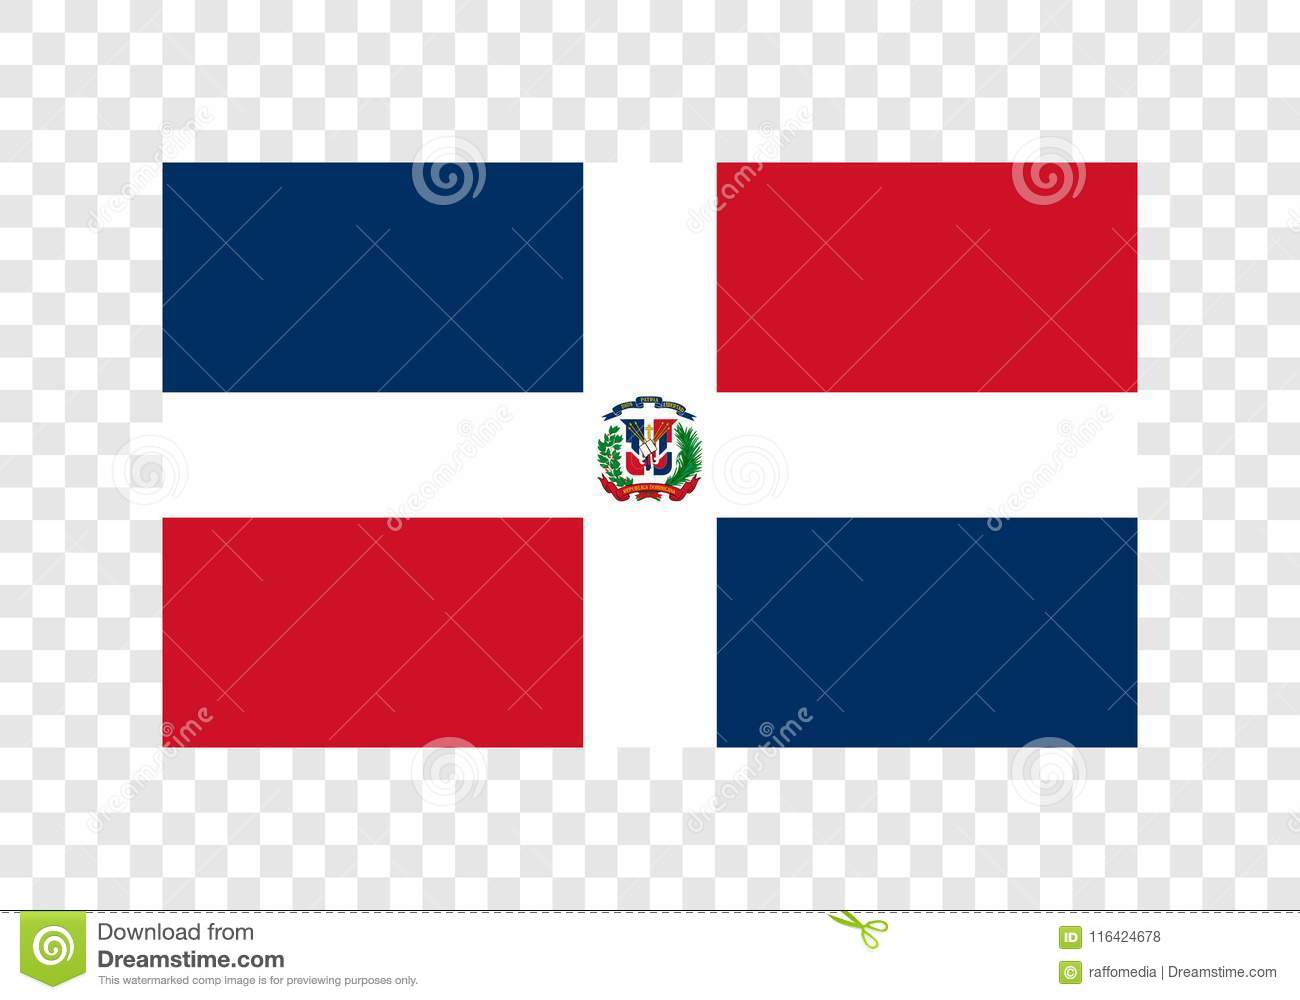 La République Dominicaine - drapeau national